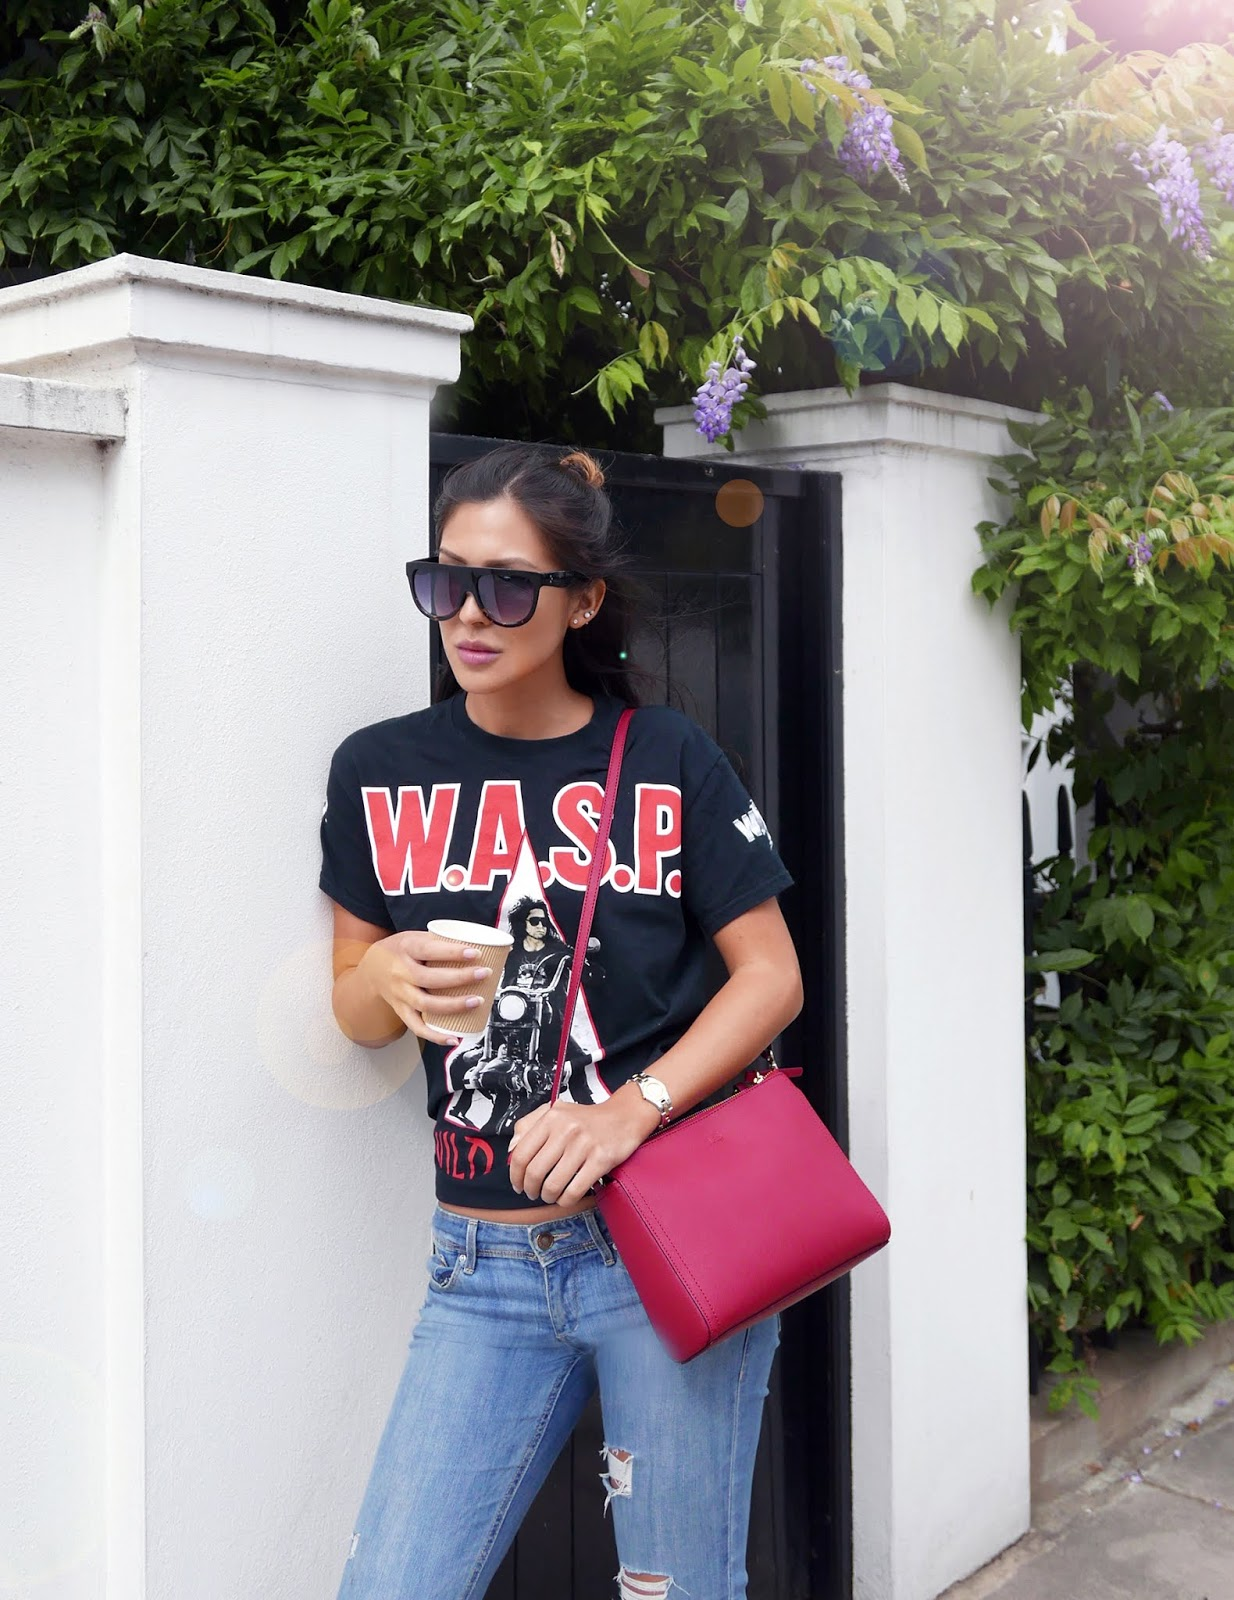 Euriental | fashion & luxury travel | WASP tshirt, Lo & Sons bag